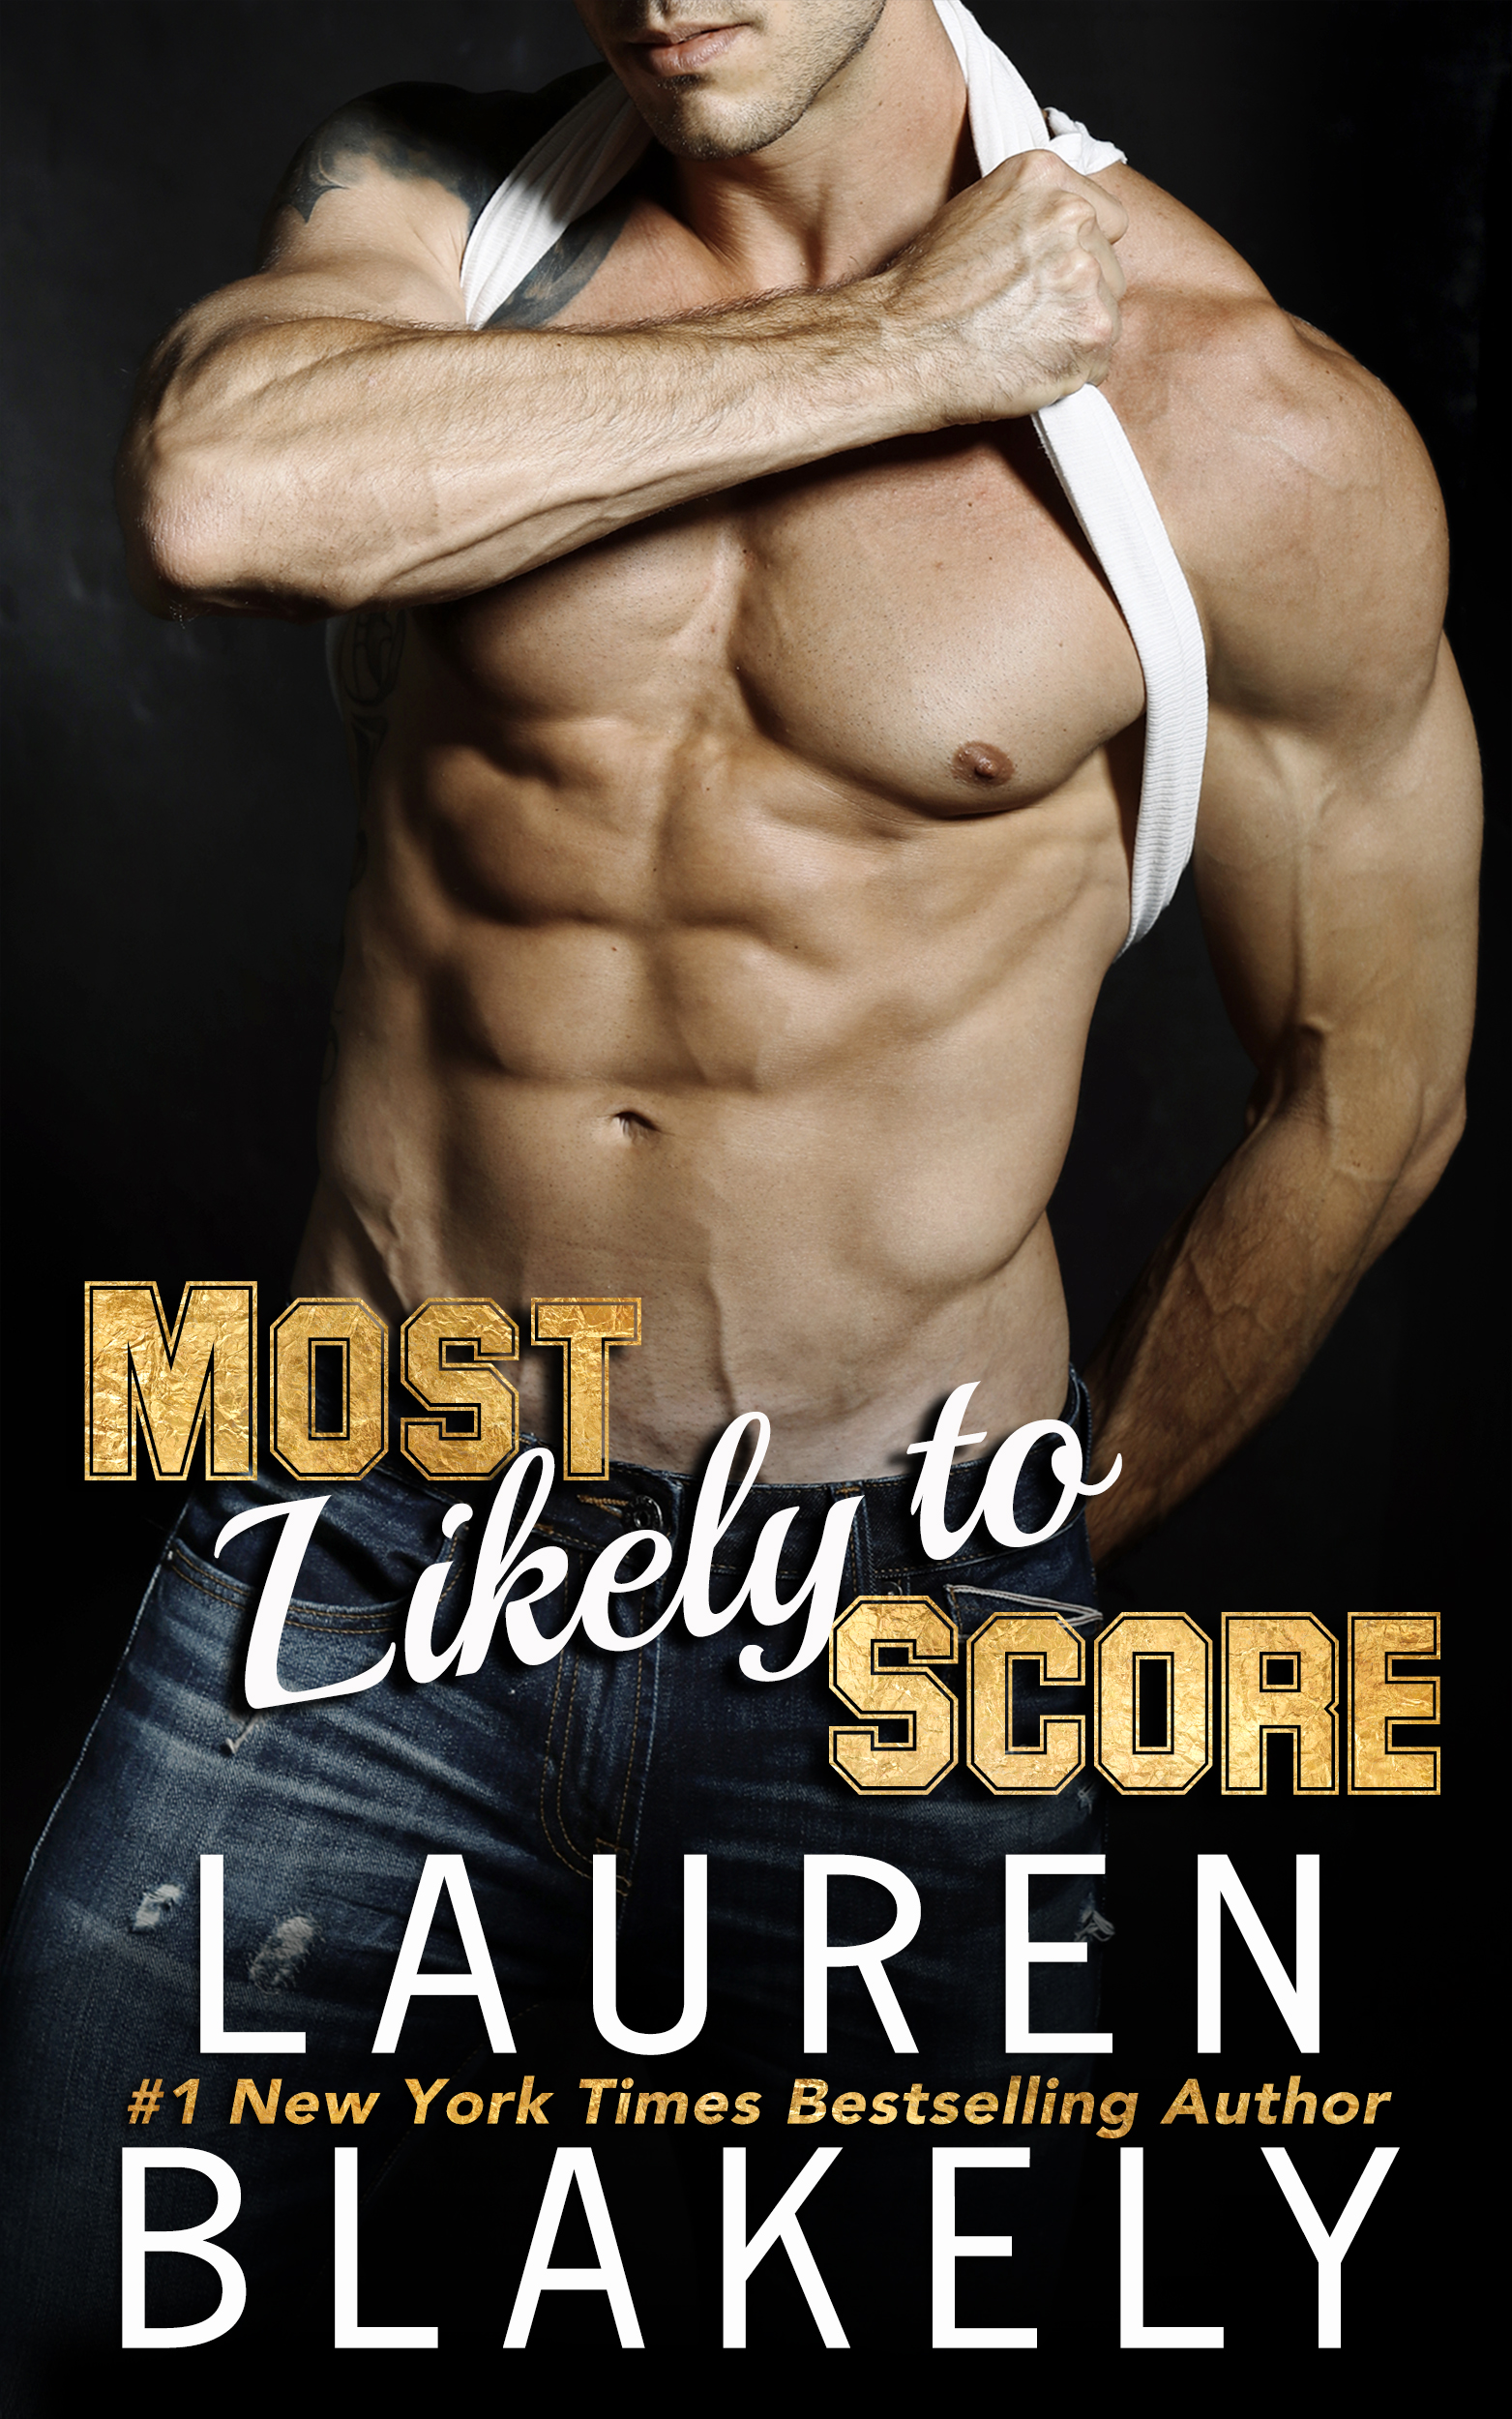 ✮✮✮ MOST LIKELY TO SCORE is here! Grab your copy today! ✮✮✮     A sexy new forbidden romance from #1 NYT Bestselling Author Lauren Blakely...       It should have been a simple play…   She needed a football player to step up and be the star for a charity calendar. I needed a sharp and savvy publicist to manage a brand-new sponsorship deal. I scratched her back. She scratched mine. And oh hell, did Jillian ever drag her nails down my back on one hell of a hot night. Okay fine, it was several hot nights on the road.  Now we're back in town and it's time to set the play clock back to when we were simply player and publicist. Given the way the last few years have gone, I can't risk this deal, so it's hands off for us once again. Trouble is, I want more than than just another night with her.   What's a guy to do when he's always been most likely to score, but the woman he's falling for is just out of bounds?   I don't date players. And I definitely don't sleep with players. And I absolutely don't fall for a certain player when I get to know him and learn he's more than just sexy -- he's clever, funny and has a heart as big as his . .. well, you get my drift.  But my job is at stake, and I can't afford to lose that as well as my heart. The problem is, I think I've already lost that game.   What's a girl to do when the clock is running out, but the man she's falling for is off limits?    MOST LIKELY TO SCORE is a brand new standalone sports romance written in dual POV!    ✦ Amazon ✦ Amazon UK ✦ Amazon AUS ✦ Amazon CAN ✦ Audible   ✦  ✦ iBooks ✦   iBooks UK   ✦ B&N ✦ Kobo ✦ Amazon PB ✦ Google Play ✦